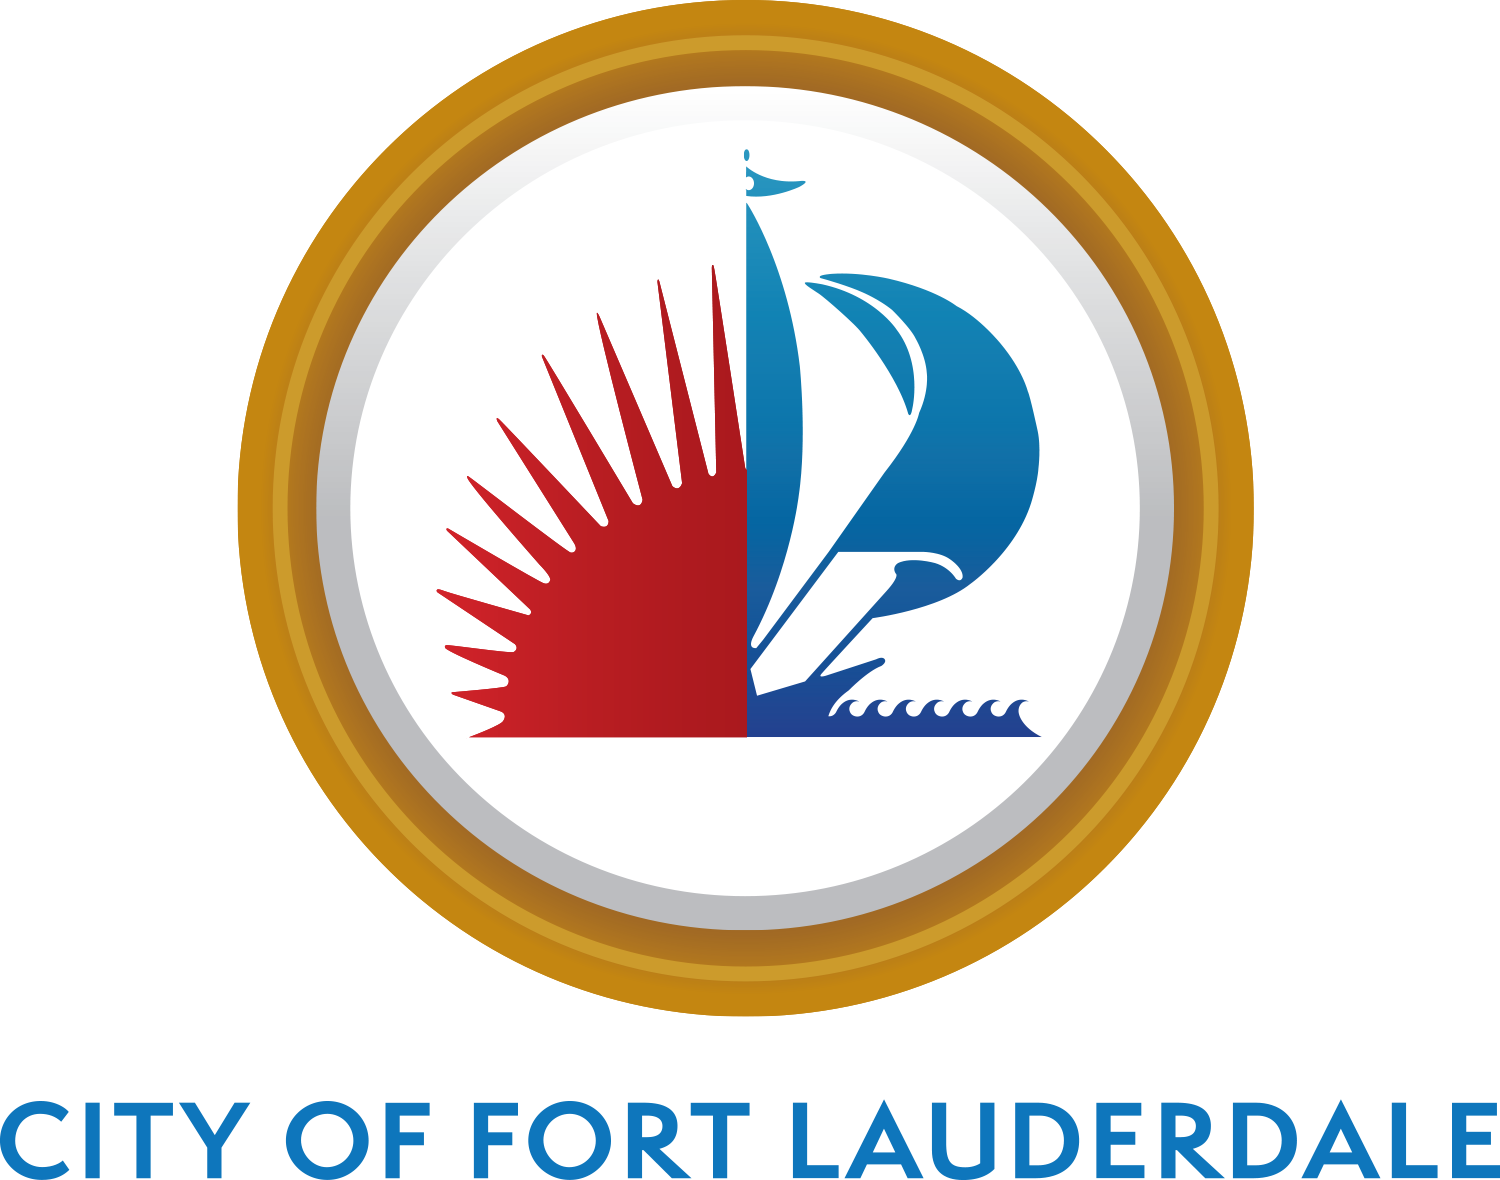 Presenting Sponsor - City of Fort Lauderdale